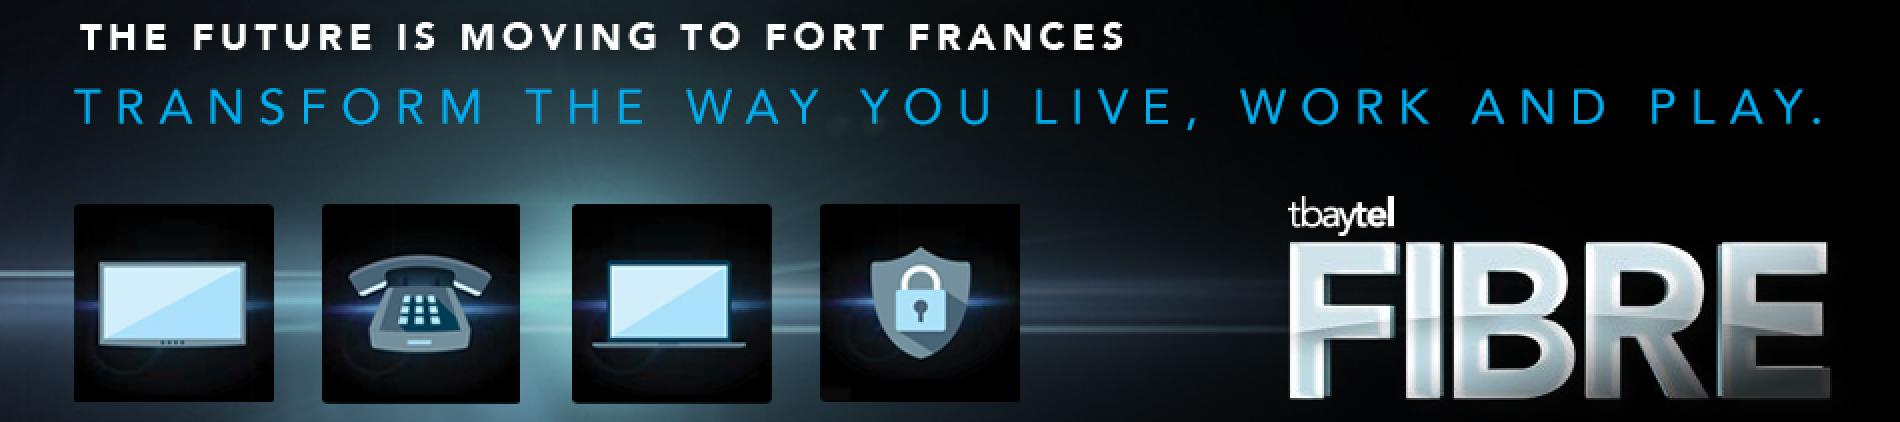 FIBER Fort Frances, Tbaytel, Digital TV, Fiber Internet, Fibe